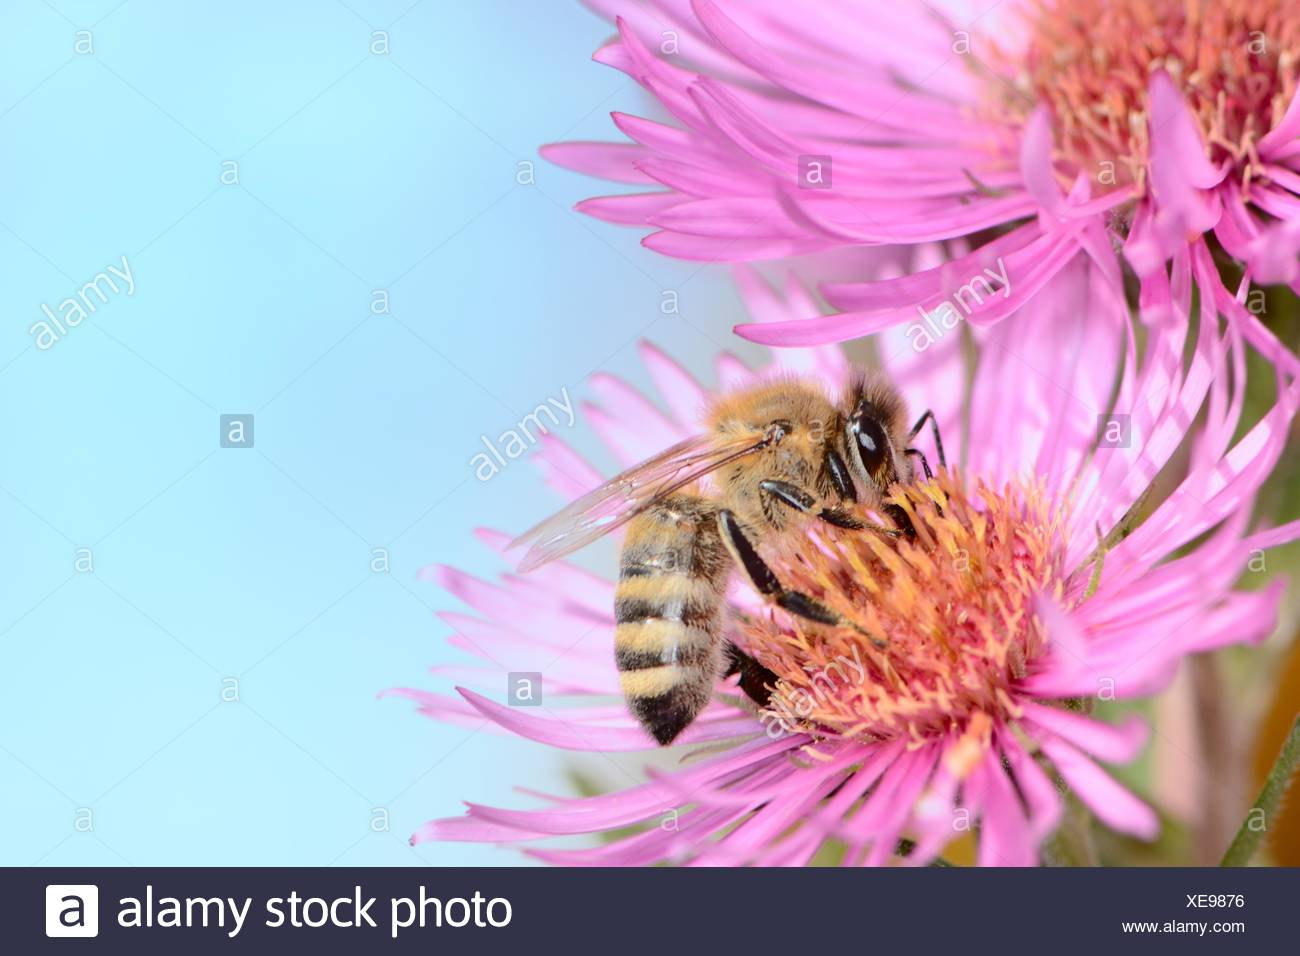 Bee Collectin Pollen On A Pink Aster Flower Stock Photo 284175114